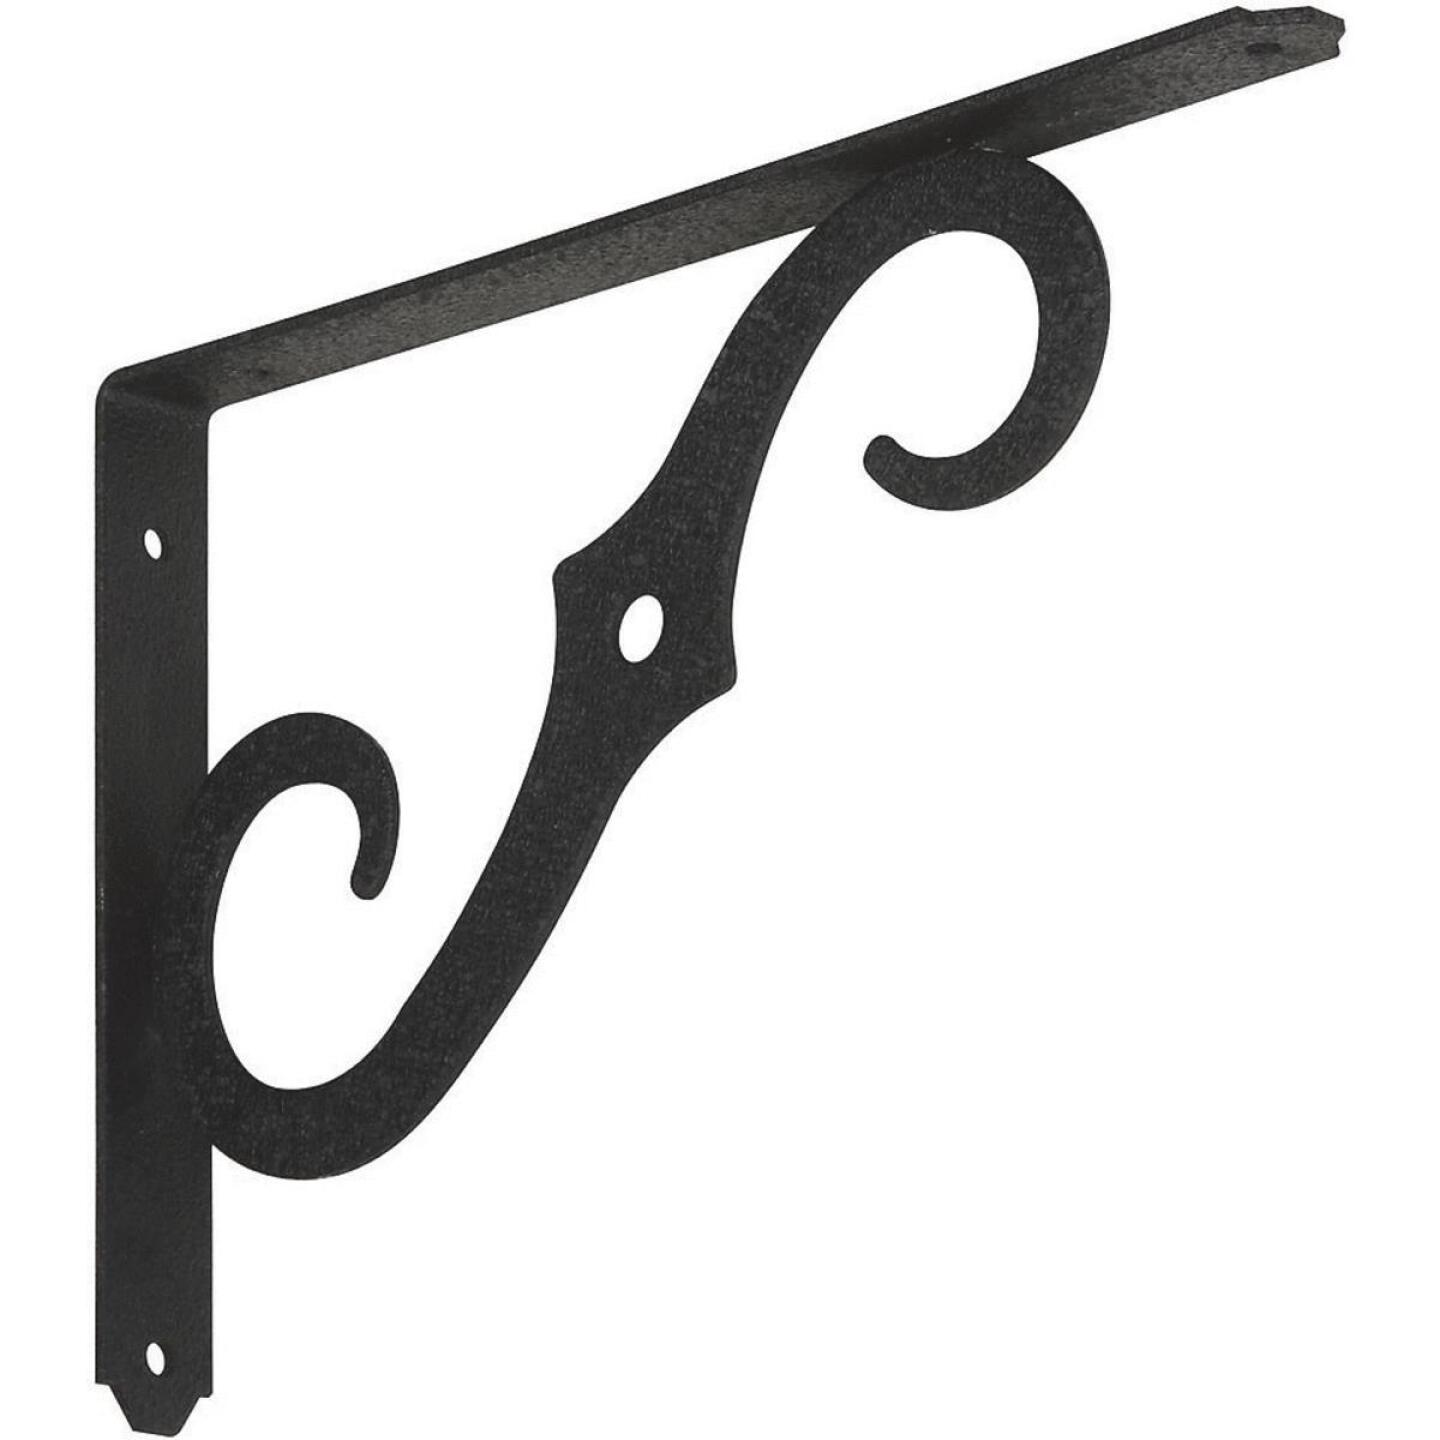 National 152 10 In. D. x 7 In. H. Black Steel Ornamental Shelf Bracket/Plant Hanger Image 1